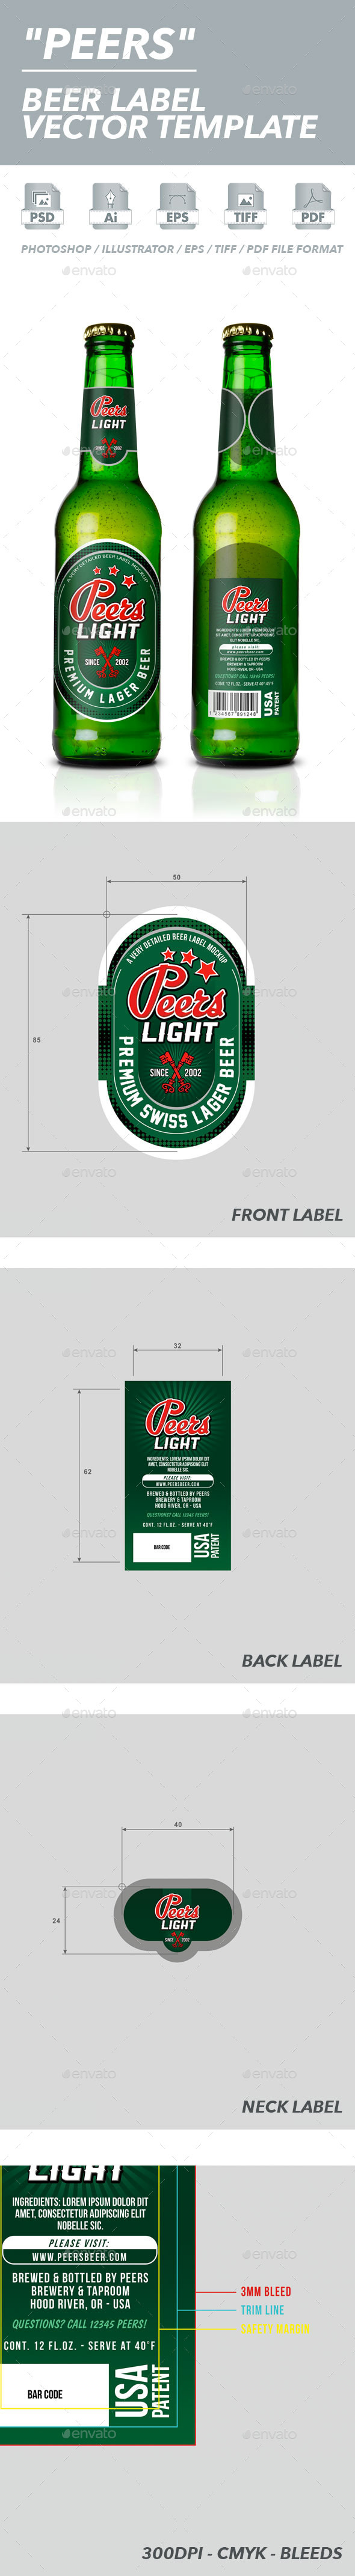 Beer Label Vector Template - Packaging Print Templates